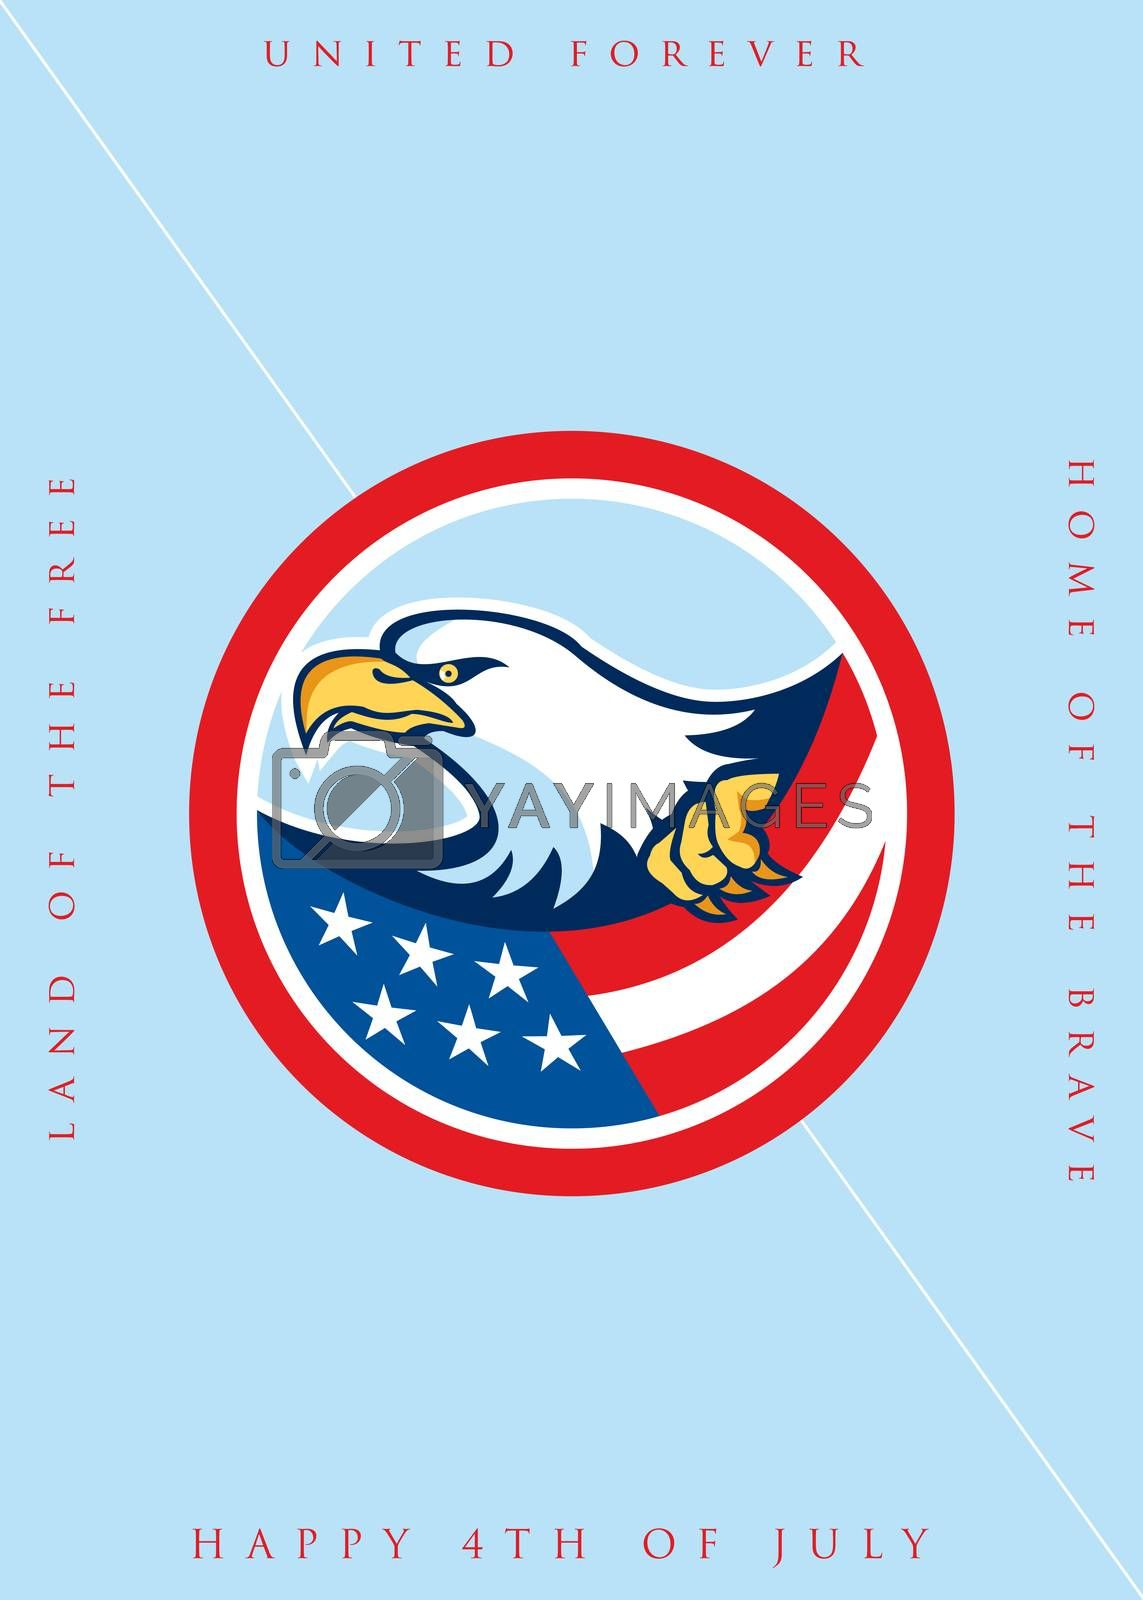 Independence Day or 4th of July greeting card featuring an illustration of a bald eagle clutching an american stars and stripes flag set inside circle on isolated background done in retro style with the words United Forever, Land of the Free, Home of the Brave, Happy 4th of July